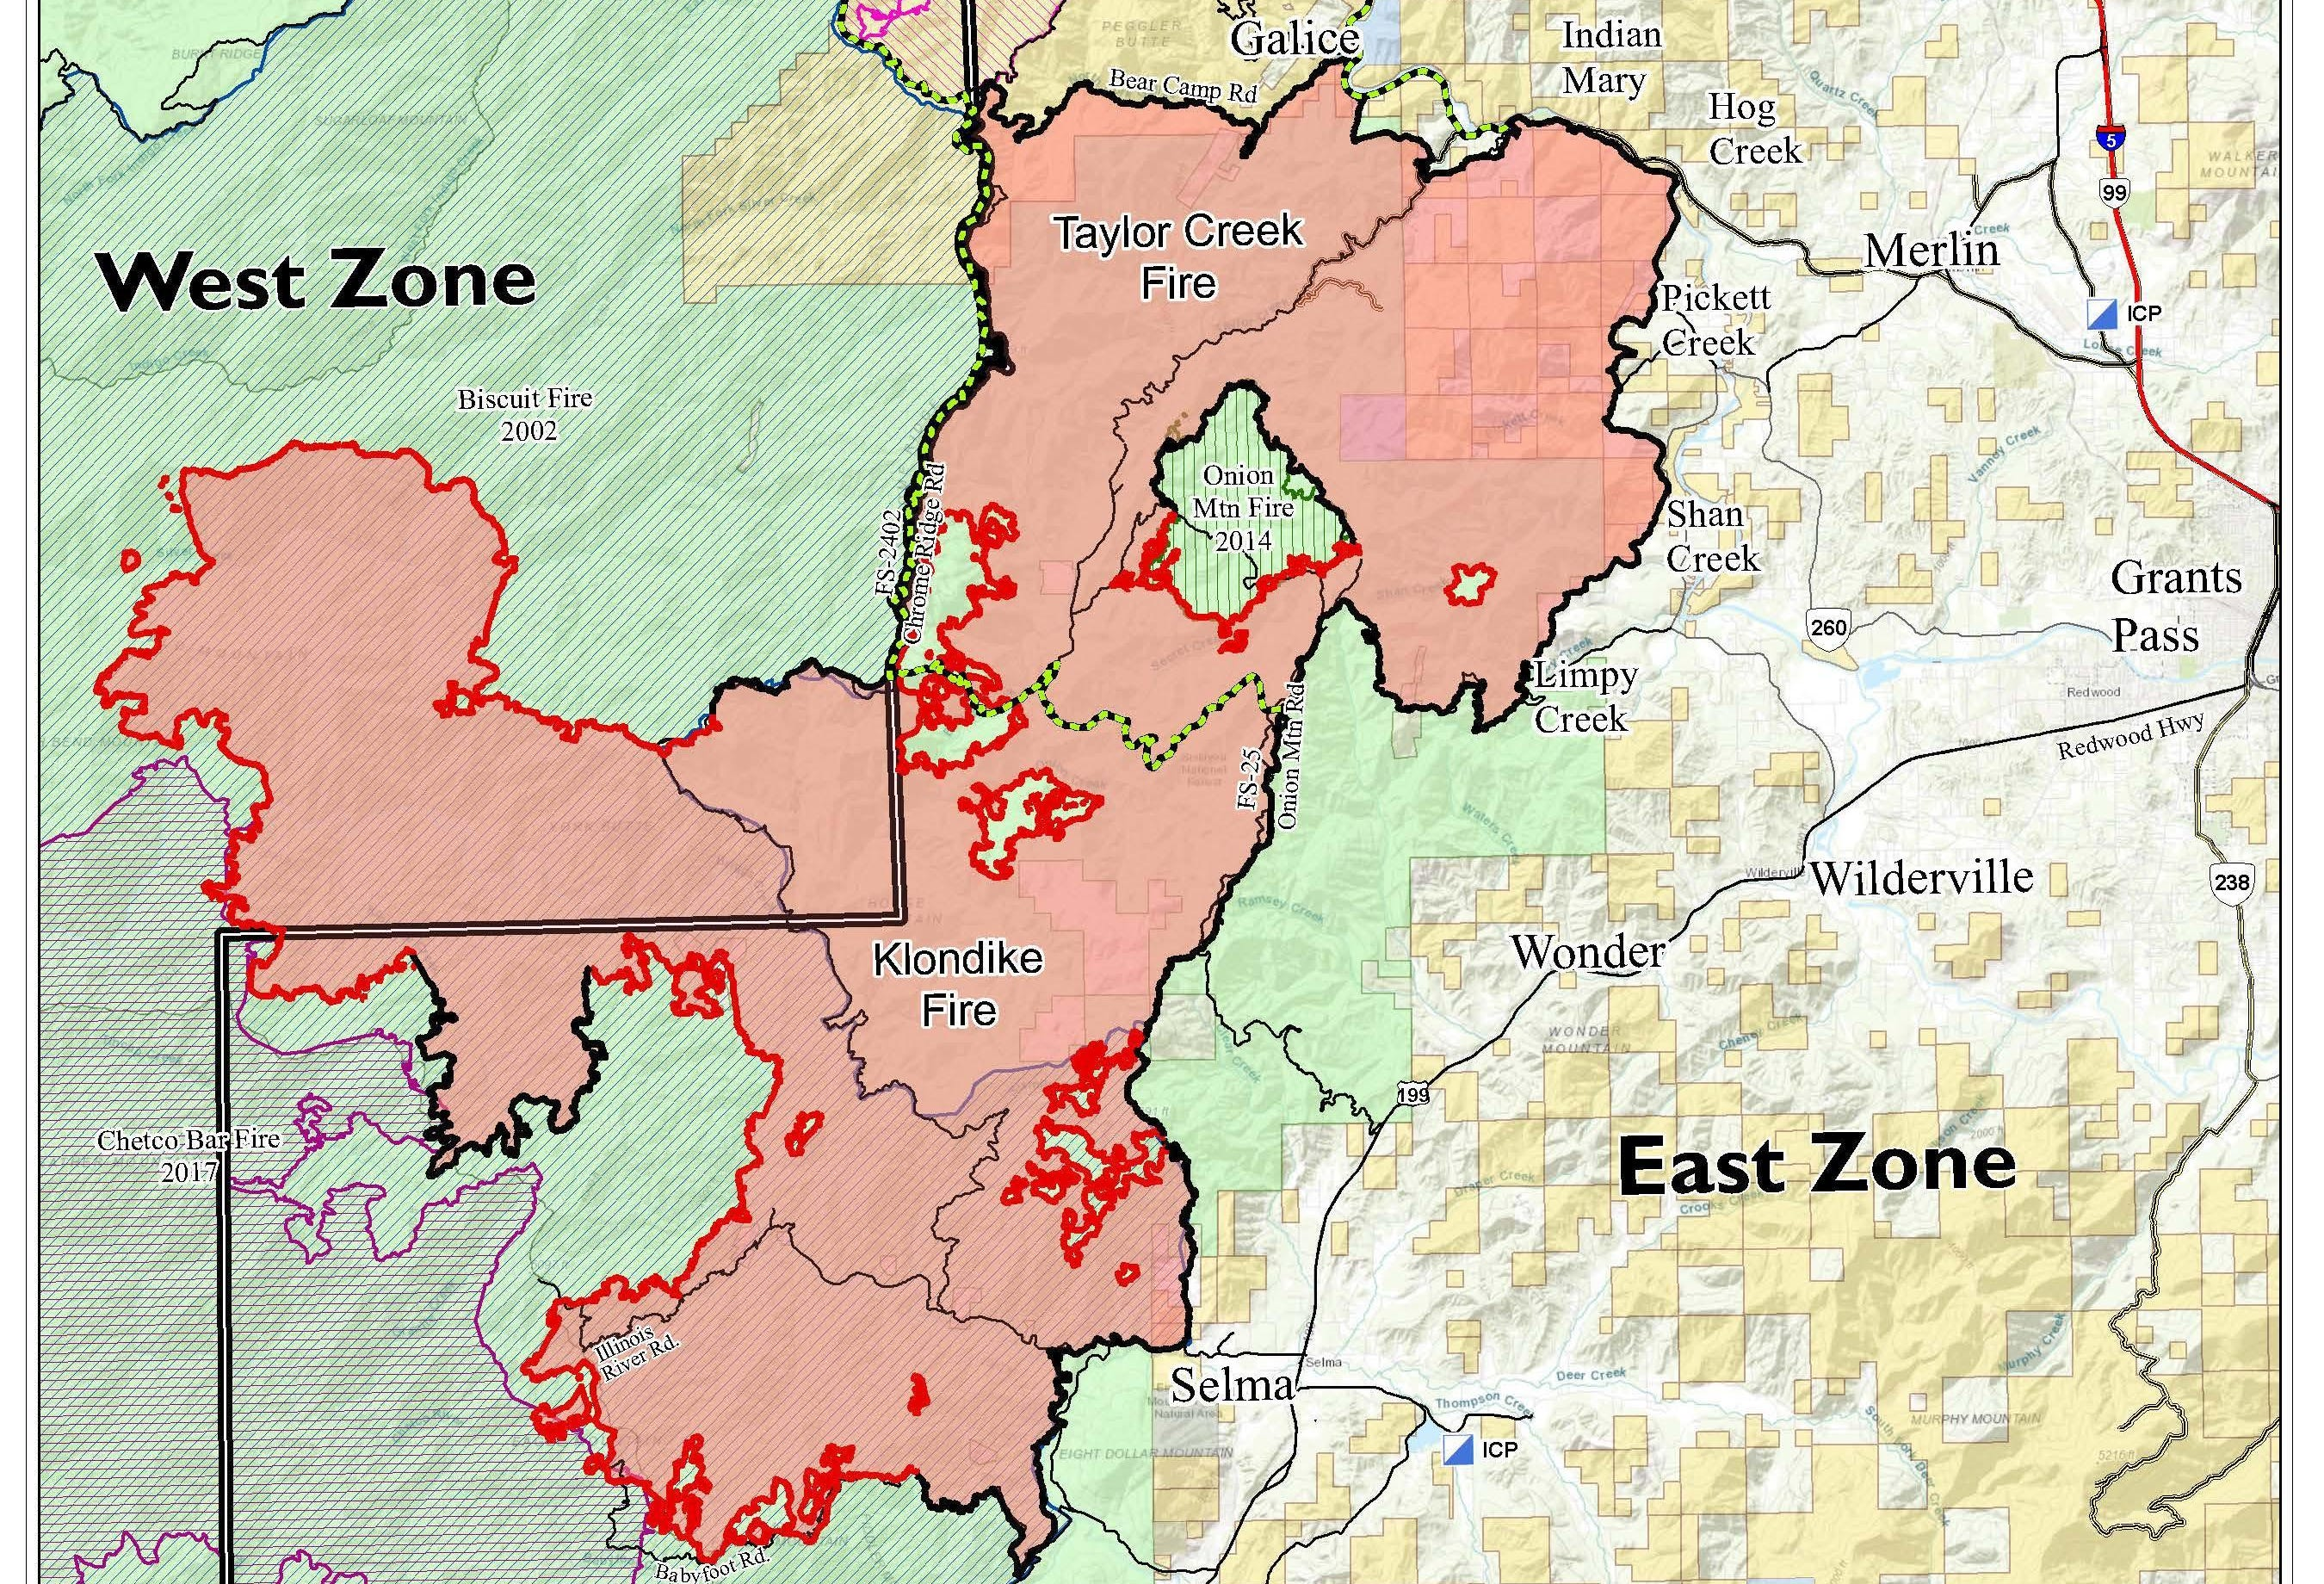 Boundary of the Klondike and Taylor Creek Fires as of Monday, August 27.